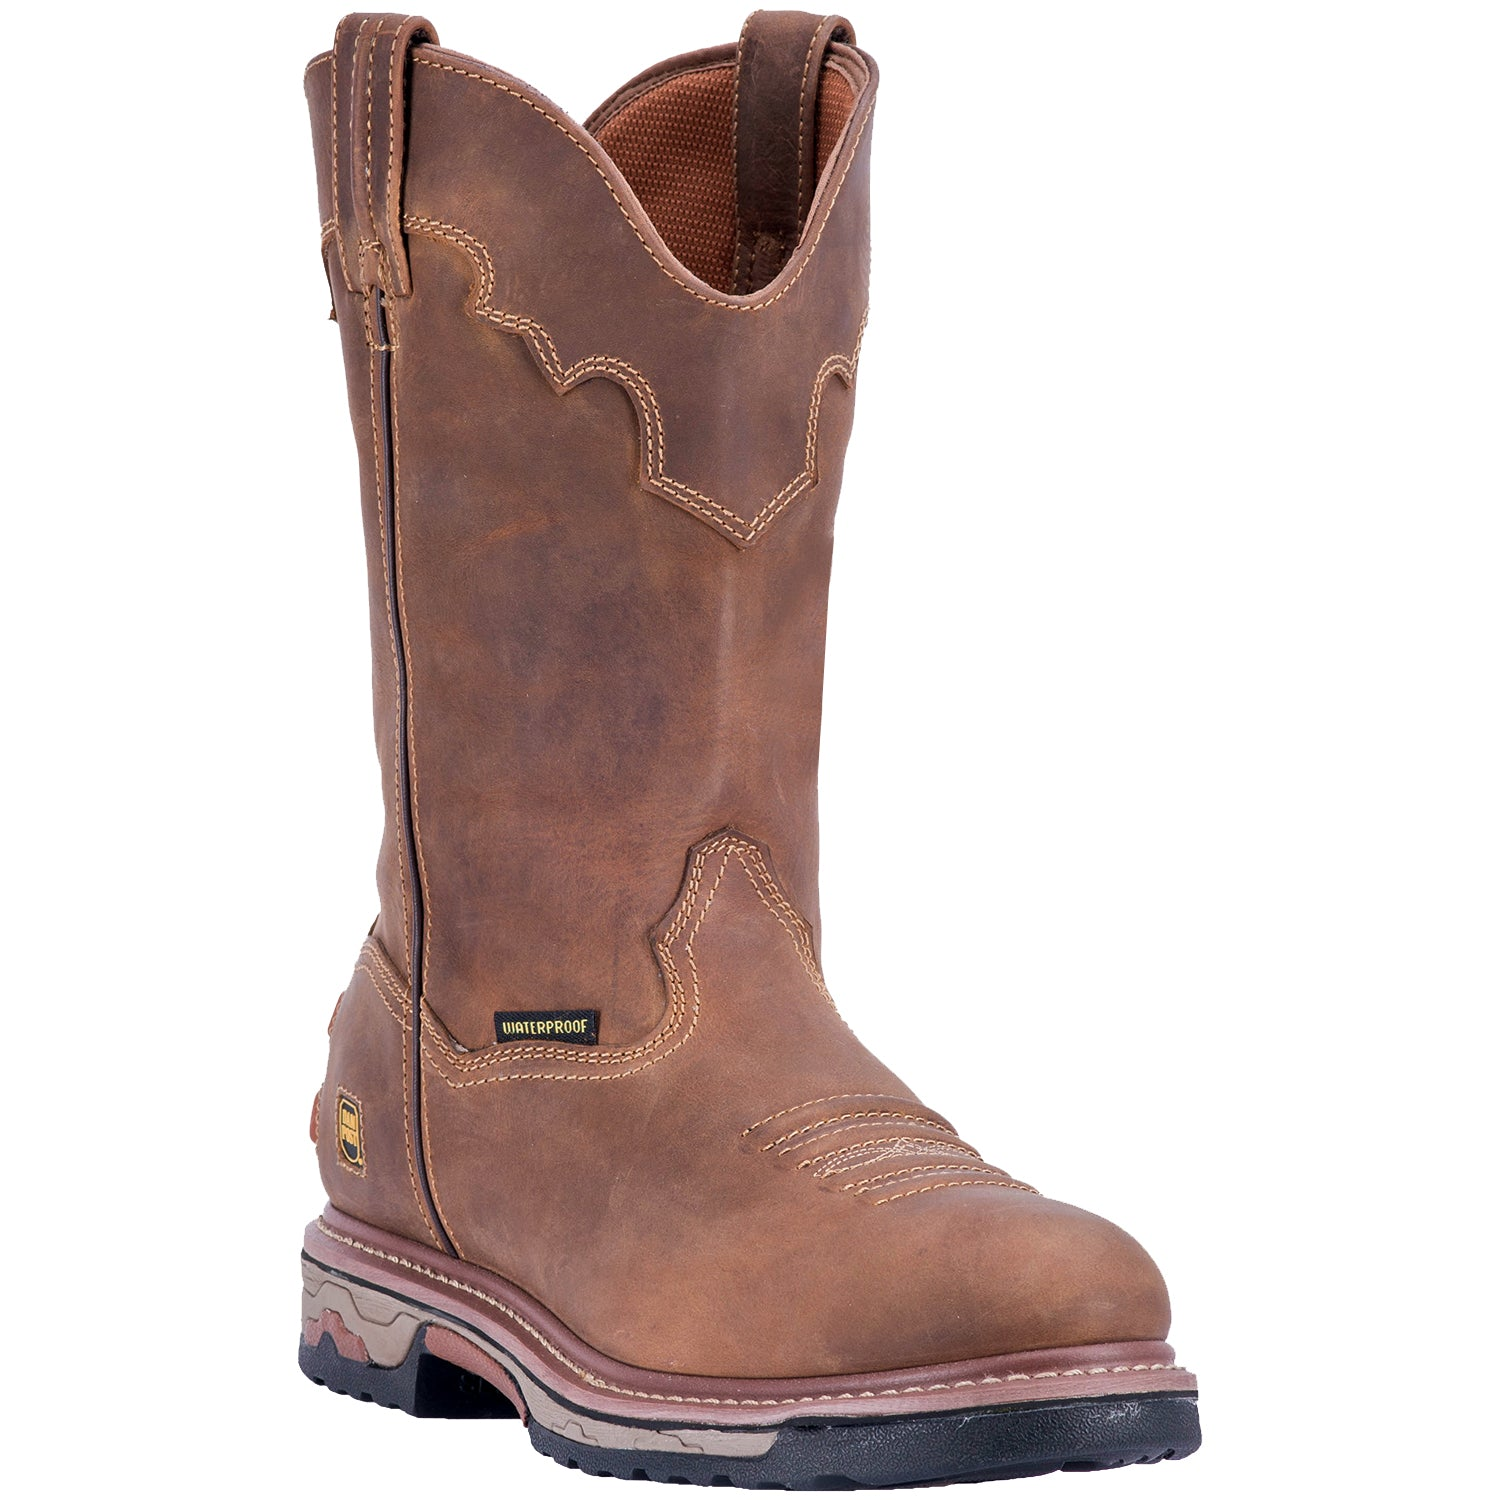 JOURNEYMAN LEATHER BOOT - Dan Post Boots